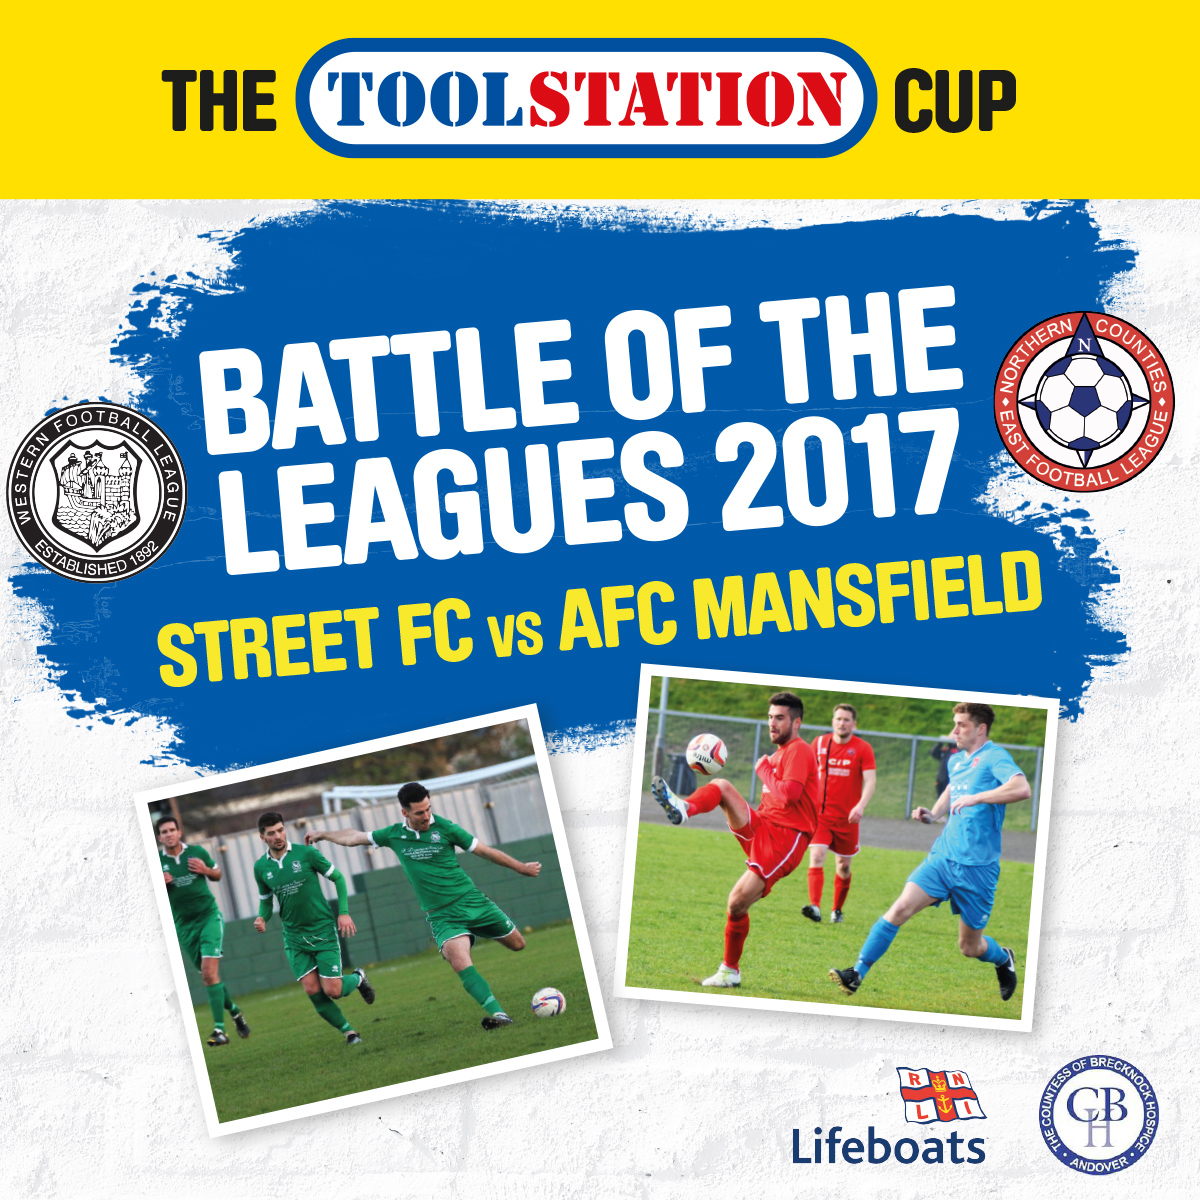 The Toolstation Cup - Charity Football Match - 22nd July 2017